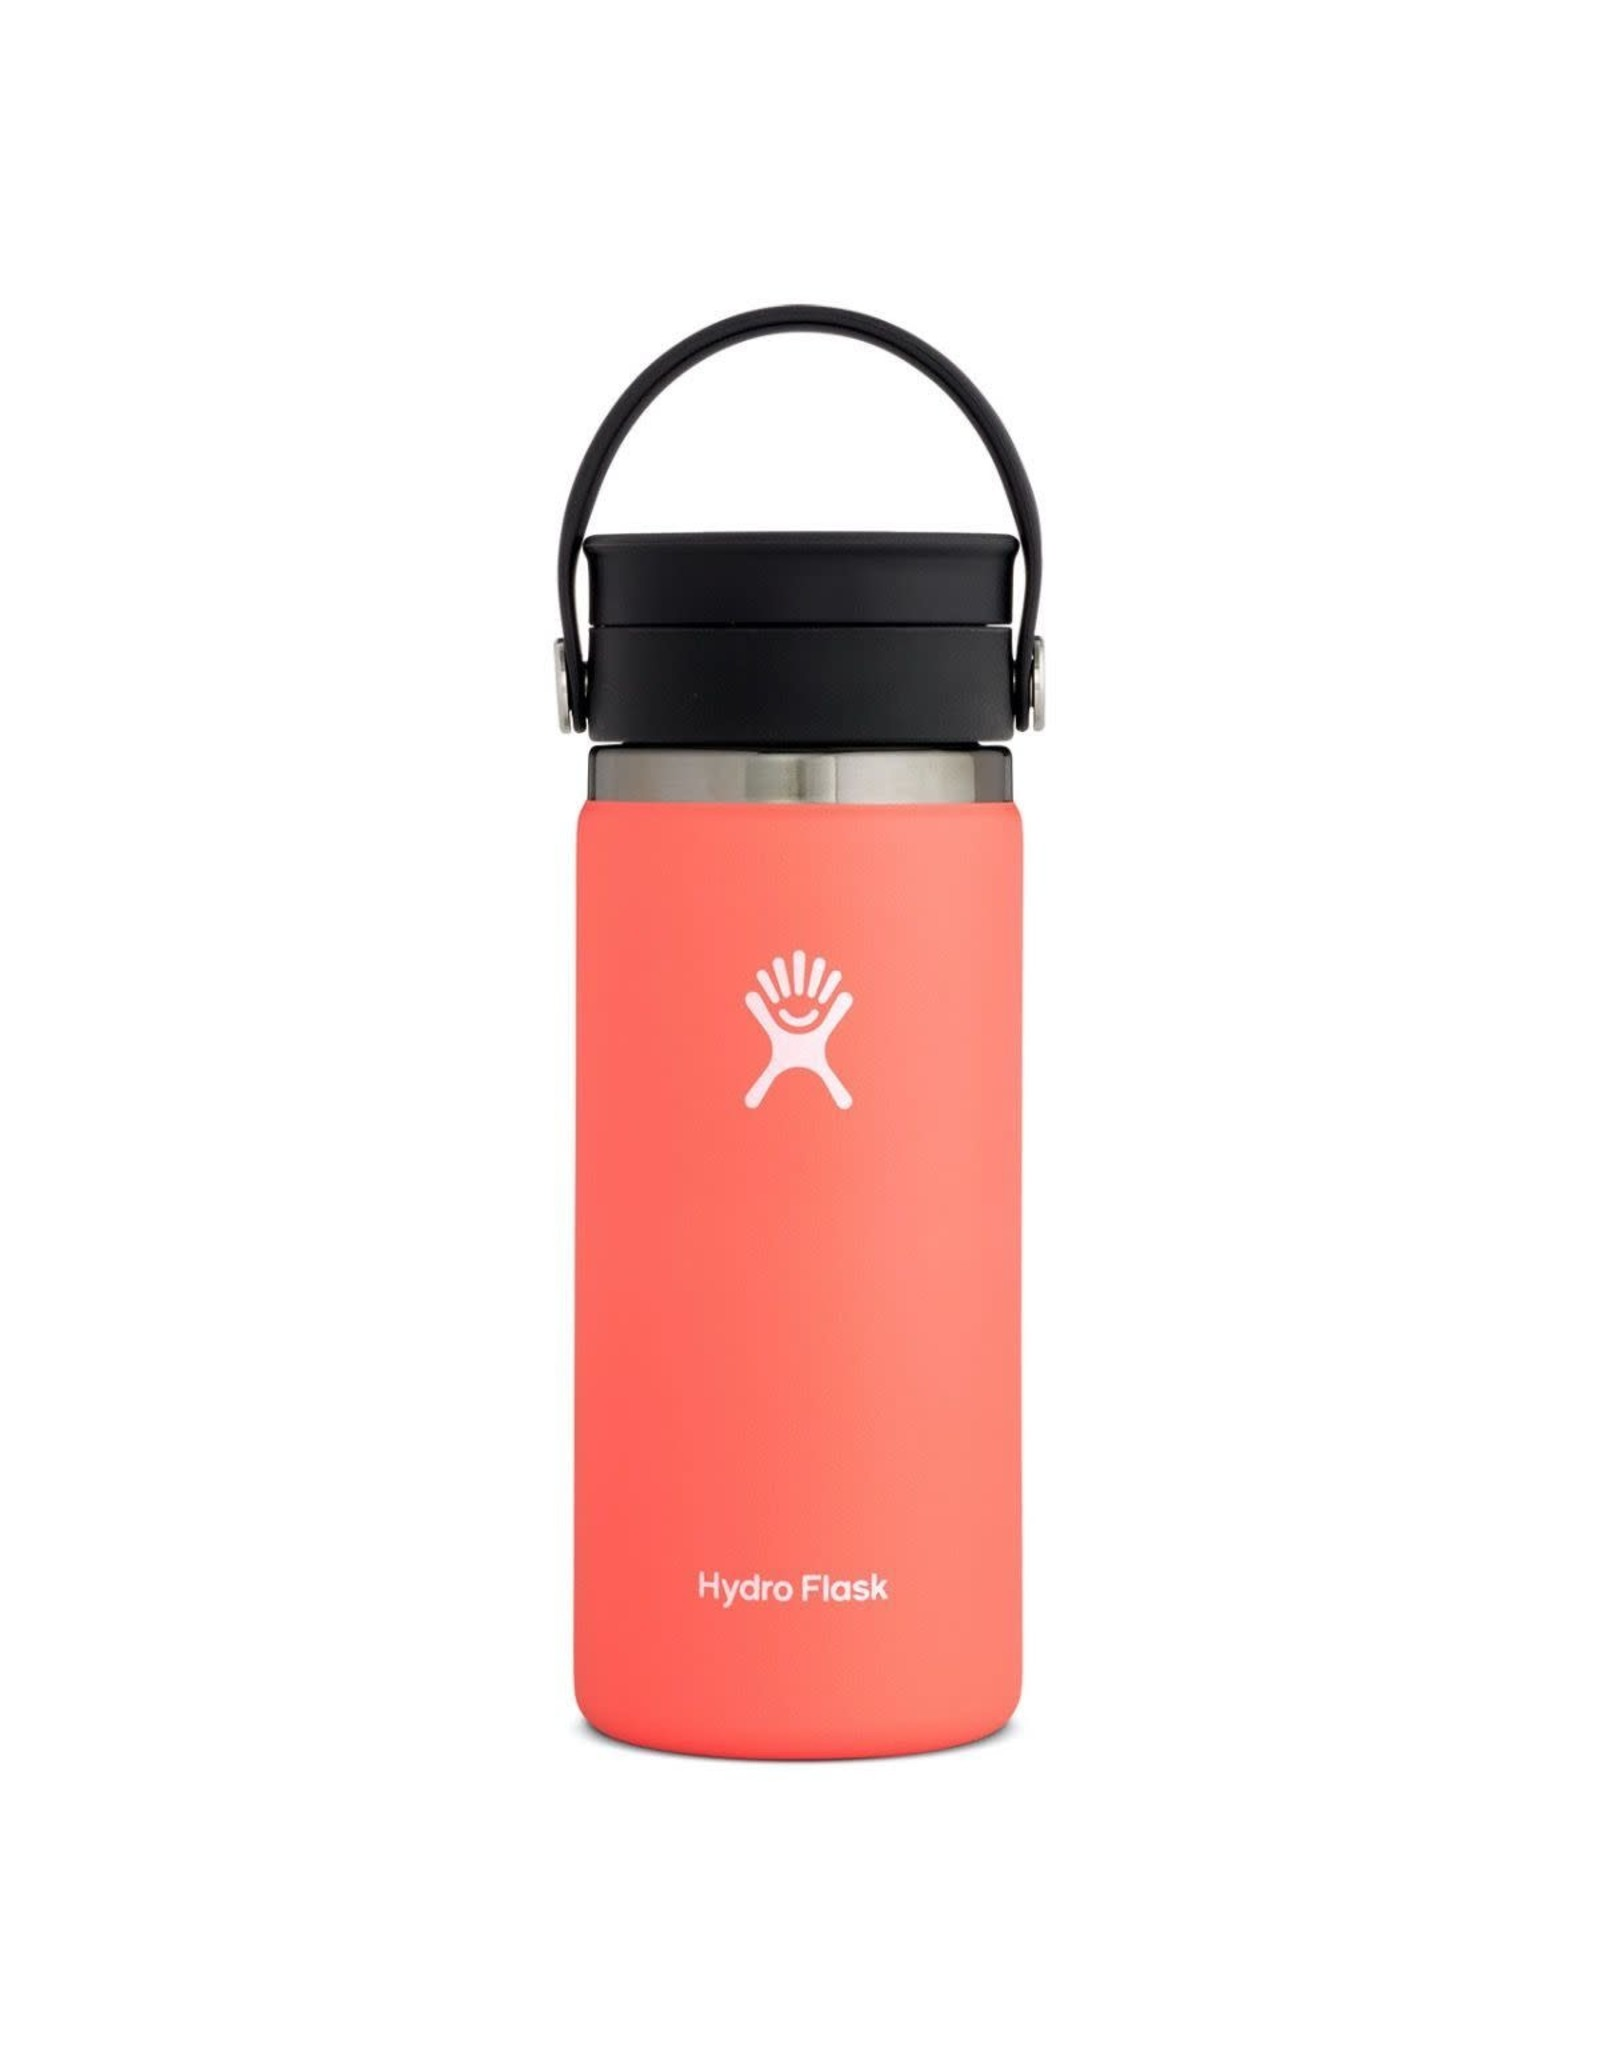 Hydro Flask Hydro Flask 16oz Wide Mouth Flex Sip Lid Hibiscus